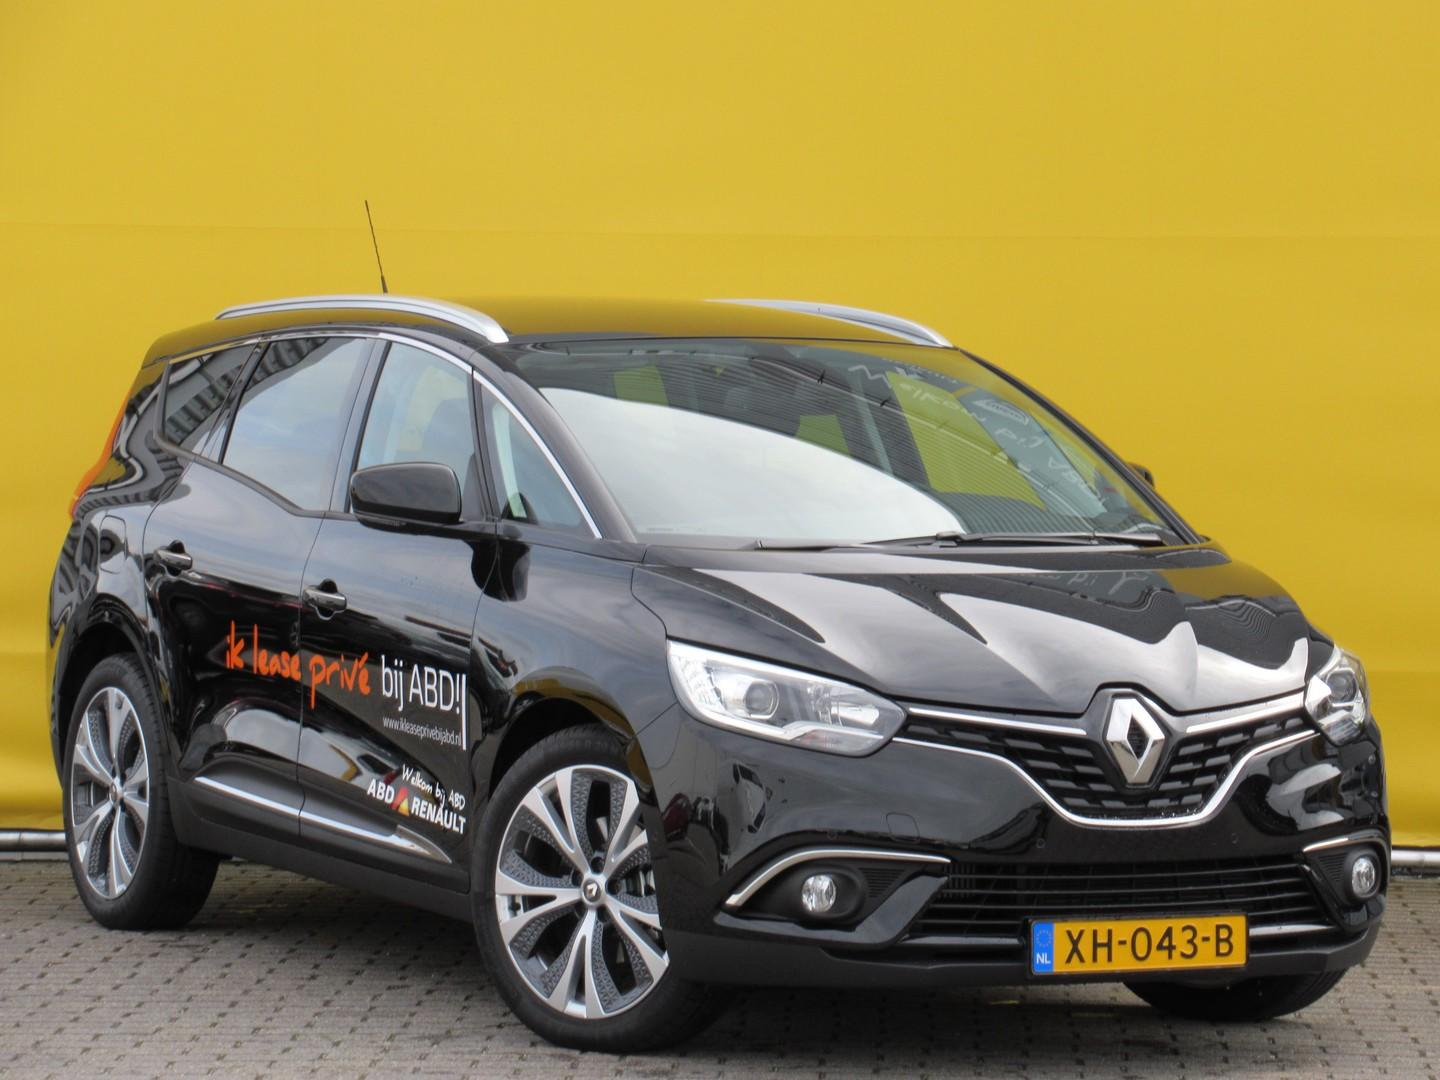 Renault Grand scénic 1.5 dci 110pk intens clima